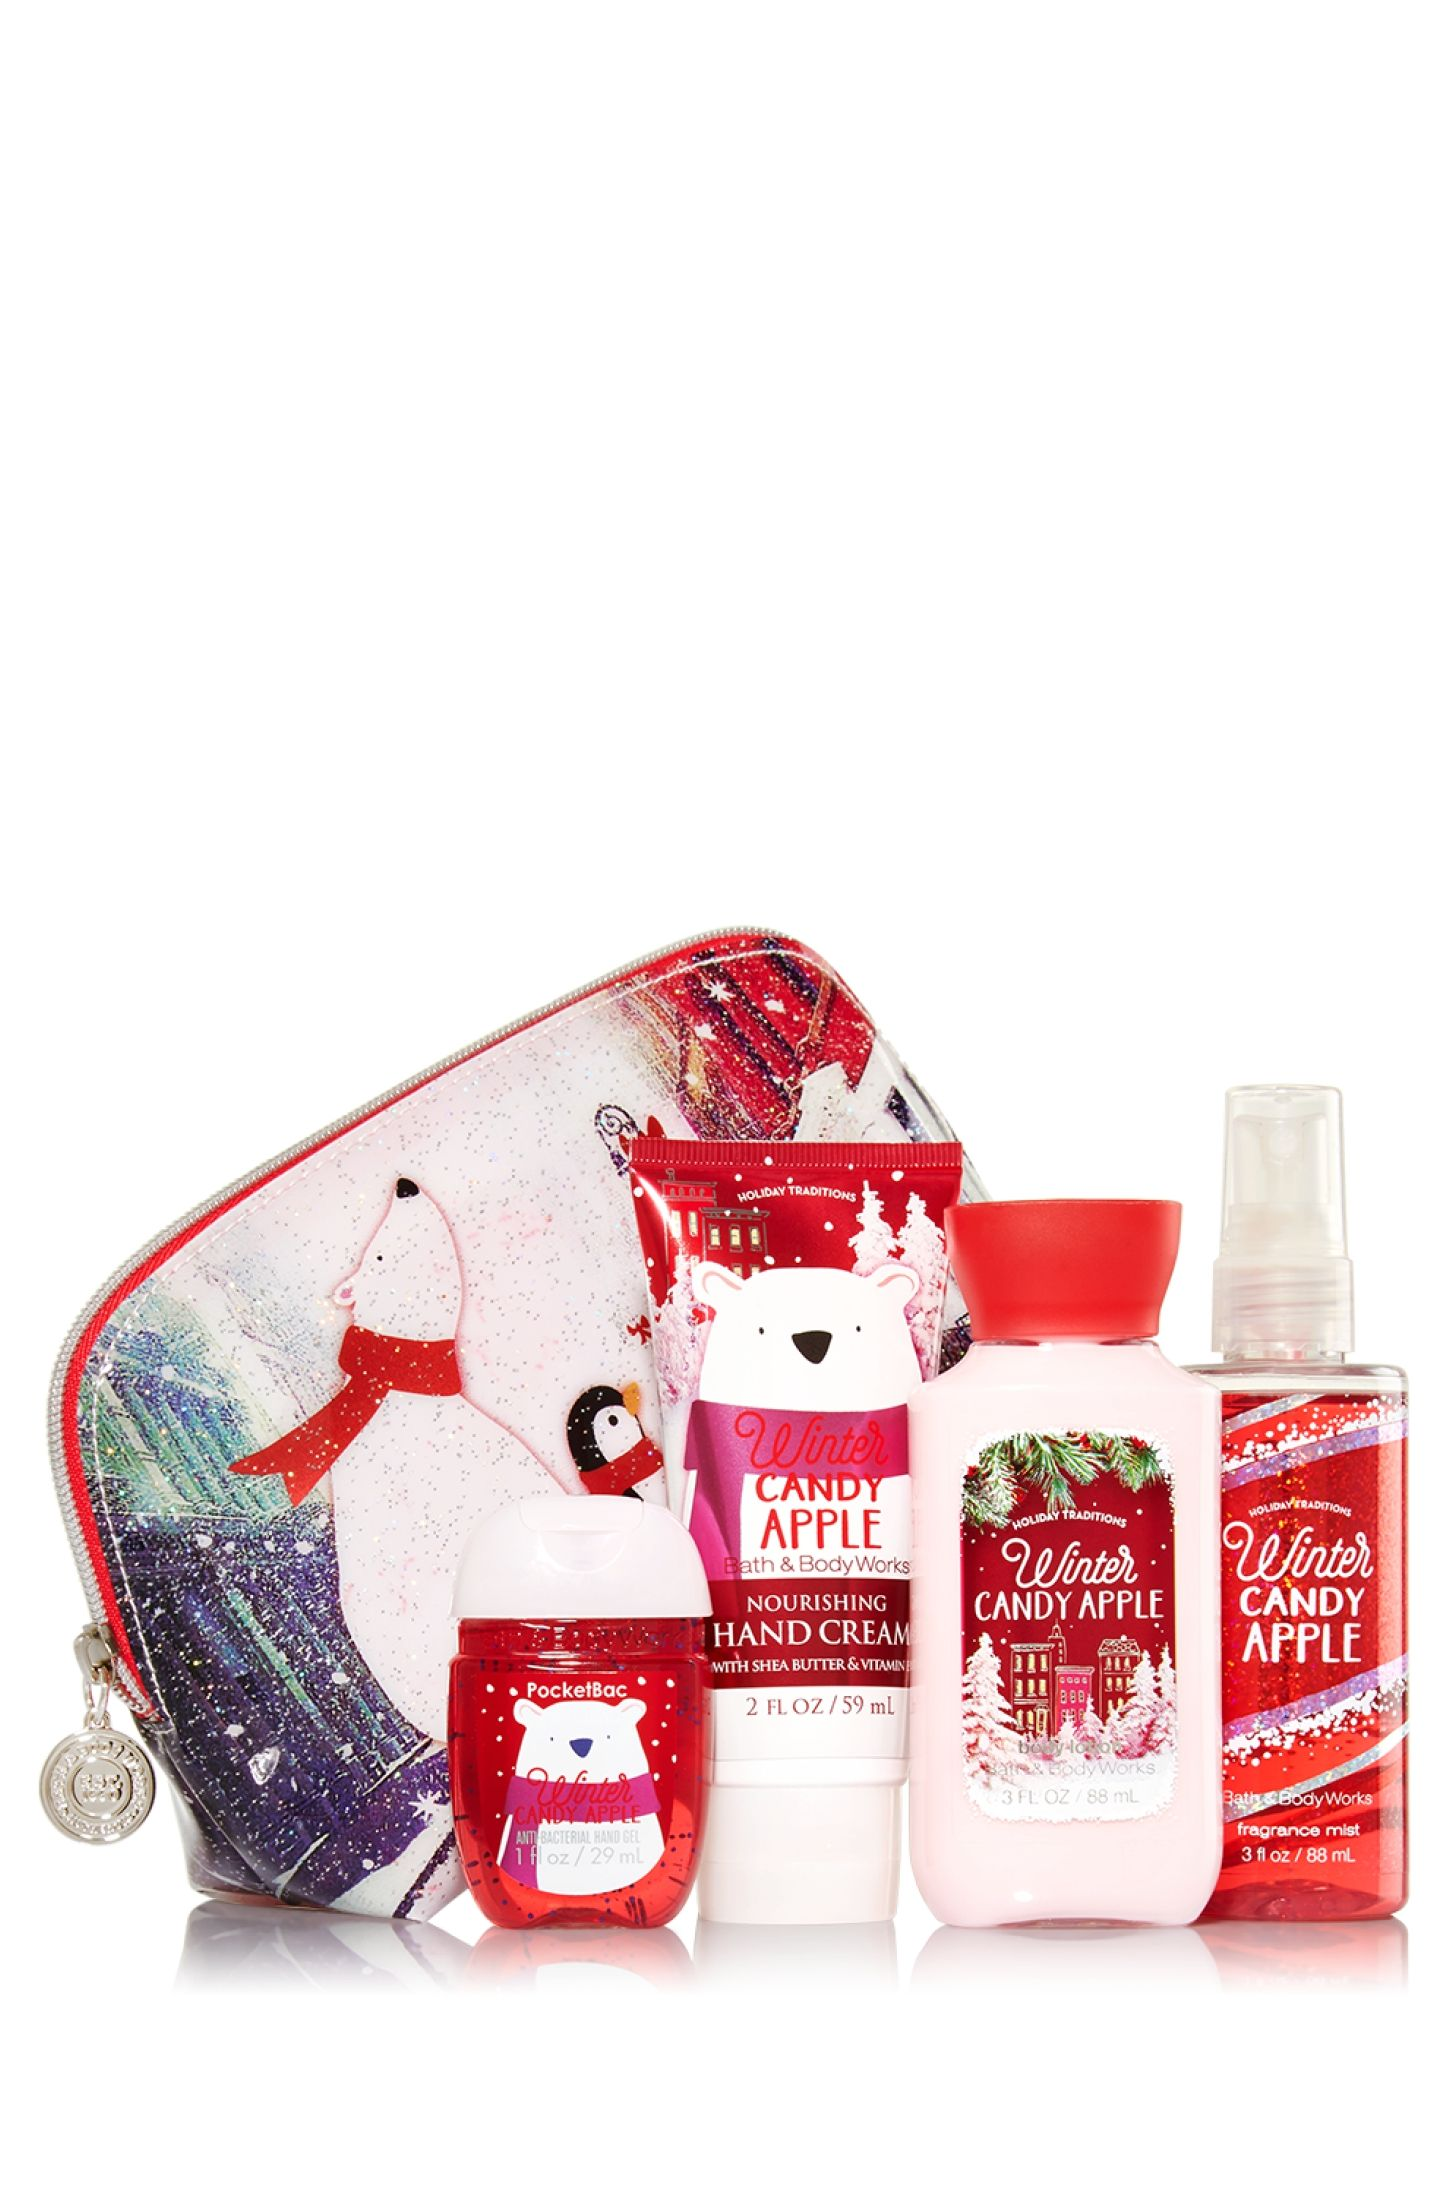 Winter Candy Apple Merry On The Go Gift Set Signature Collection